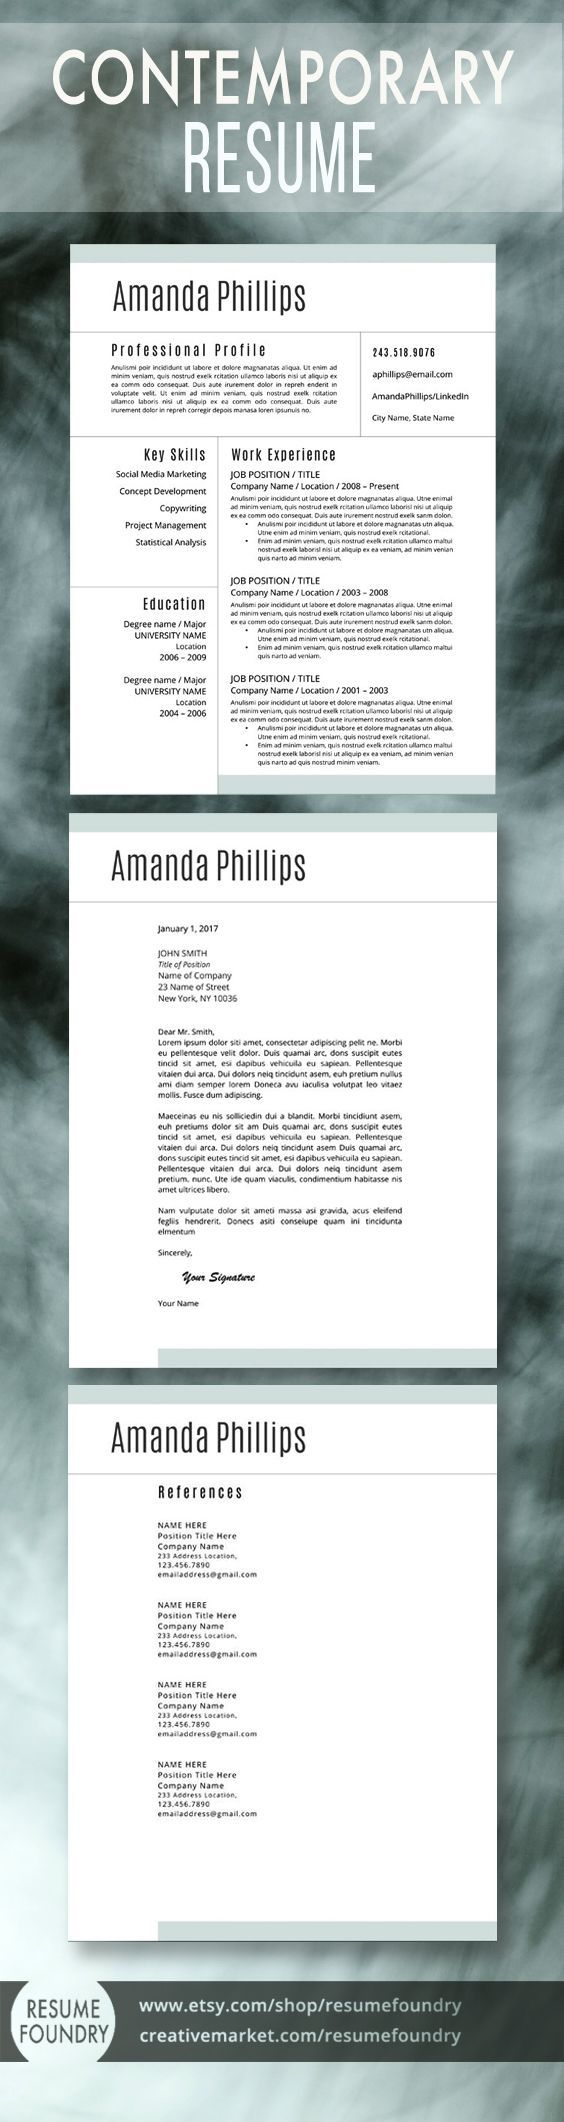 Reference Page Resume Template Classy Modern Resume Template For Word 13 Page Resume  Cover Letter  .